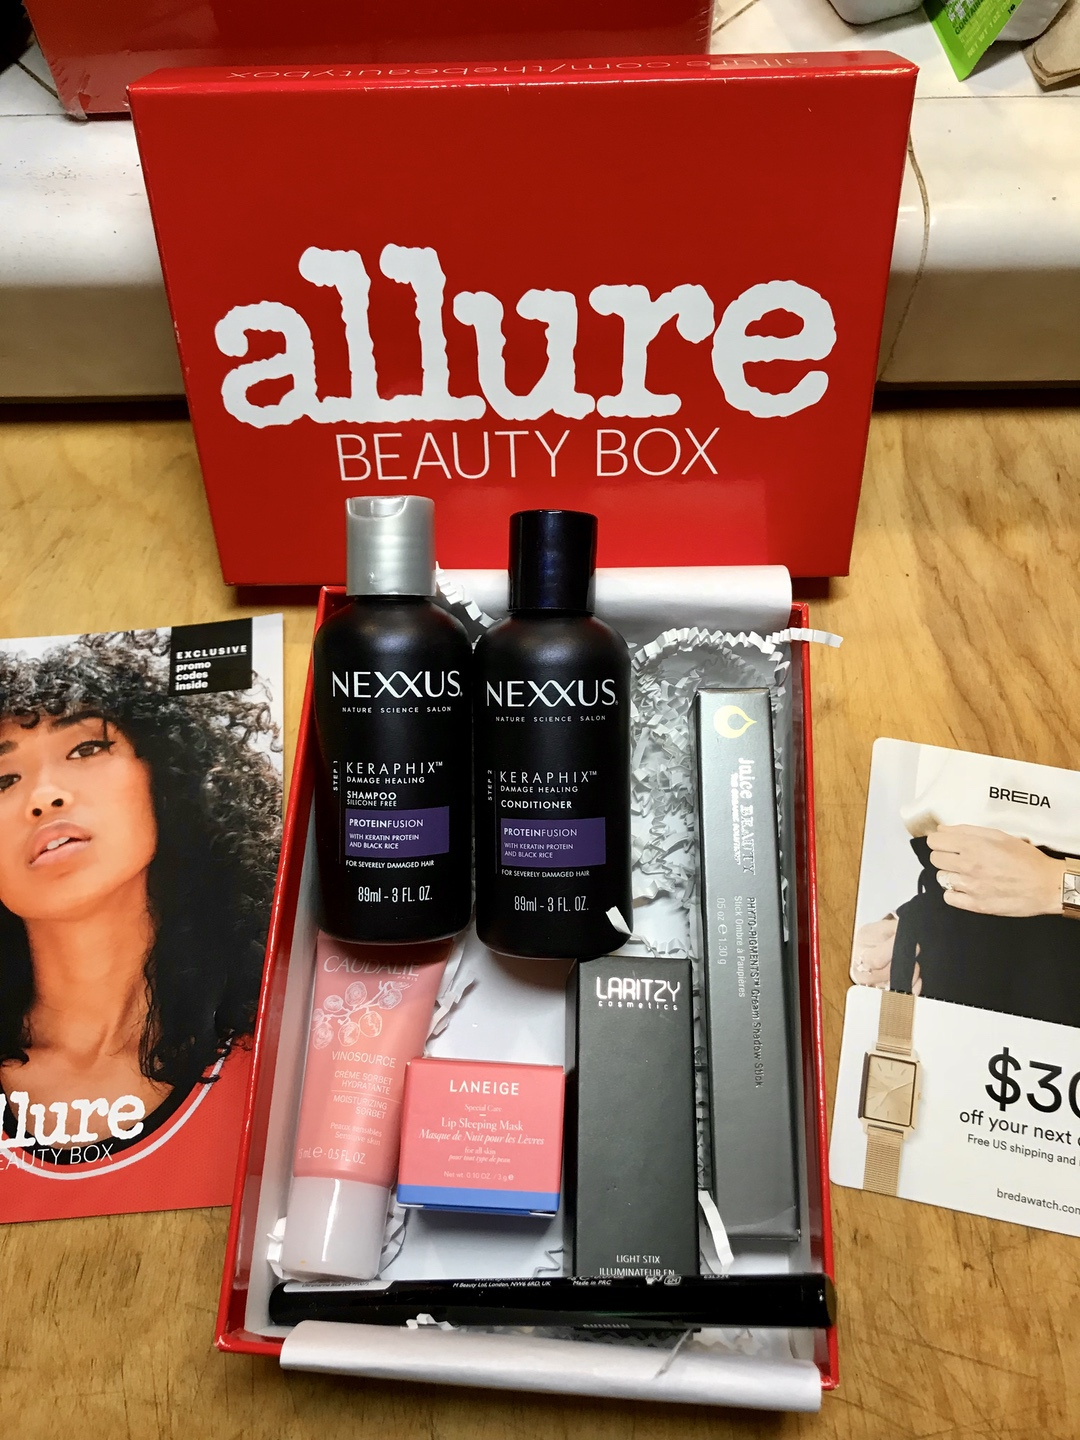 Allure Beauty Box August 2018 #allure #allurebeautybox #beautybox #beauty #makeup